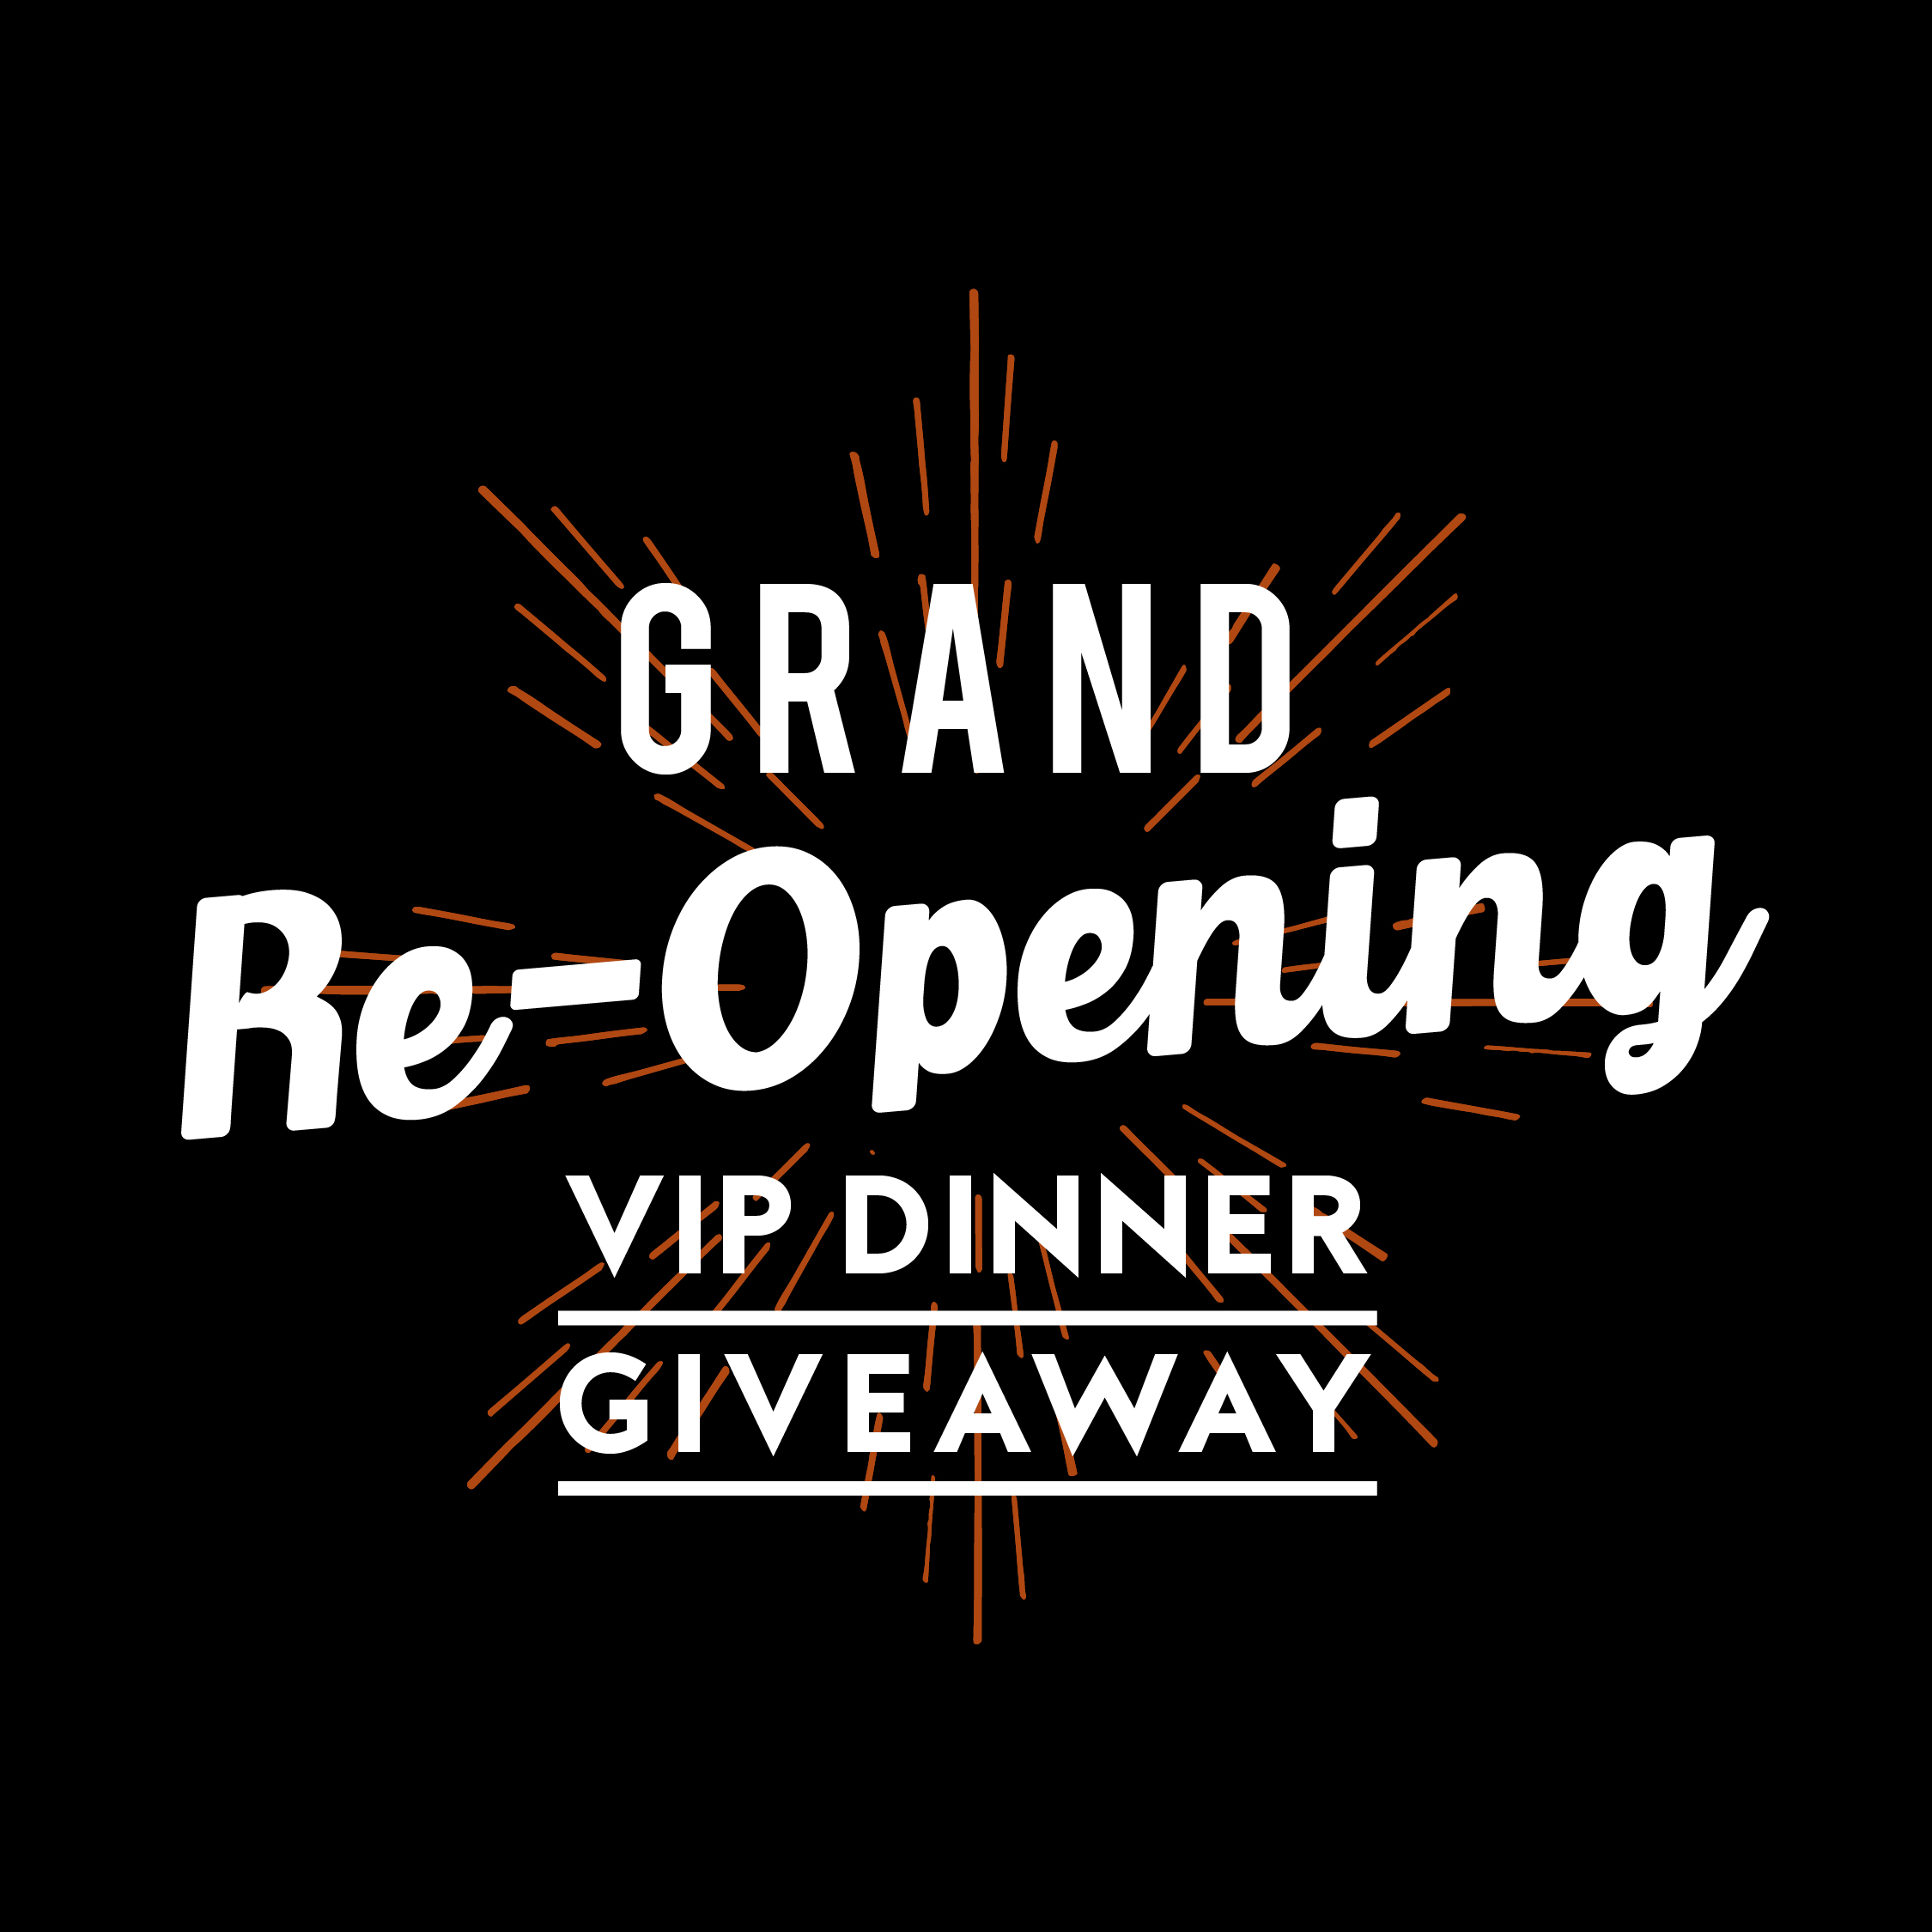 Delacombe Grand Re-opening Giveaway!